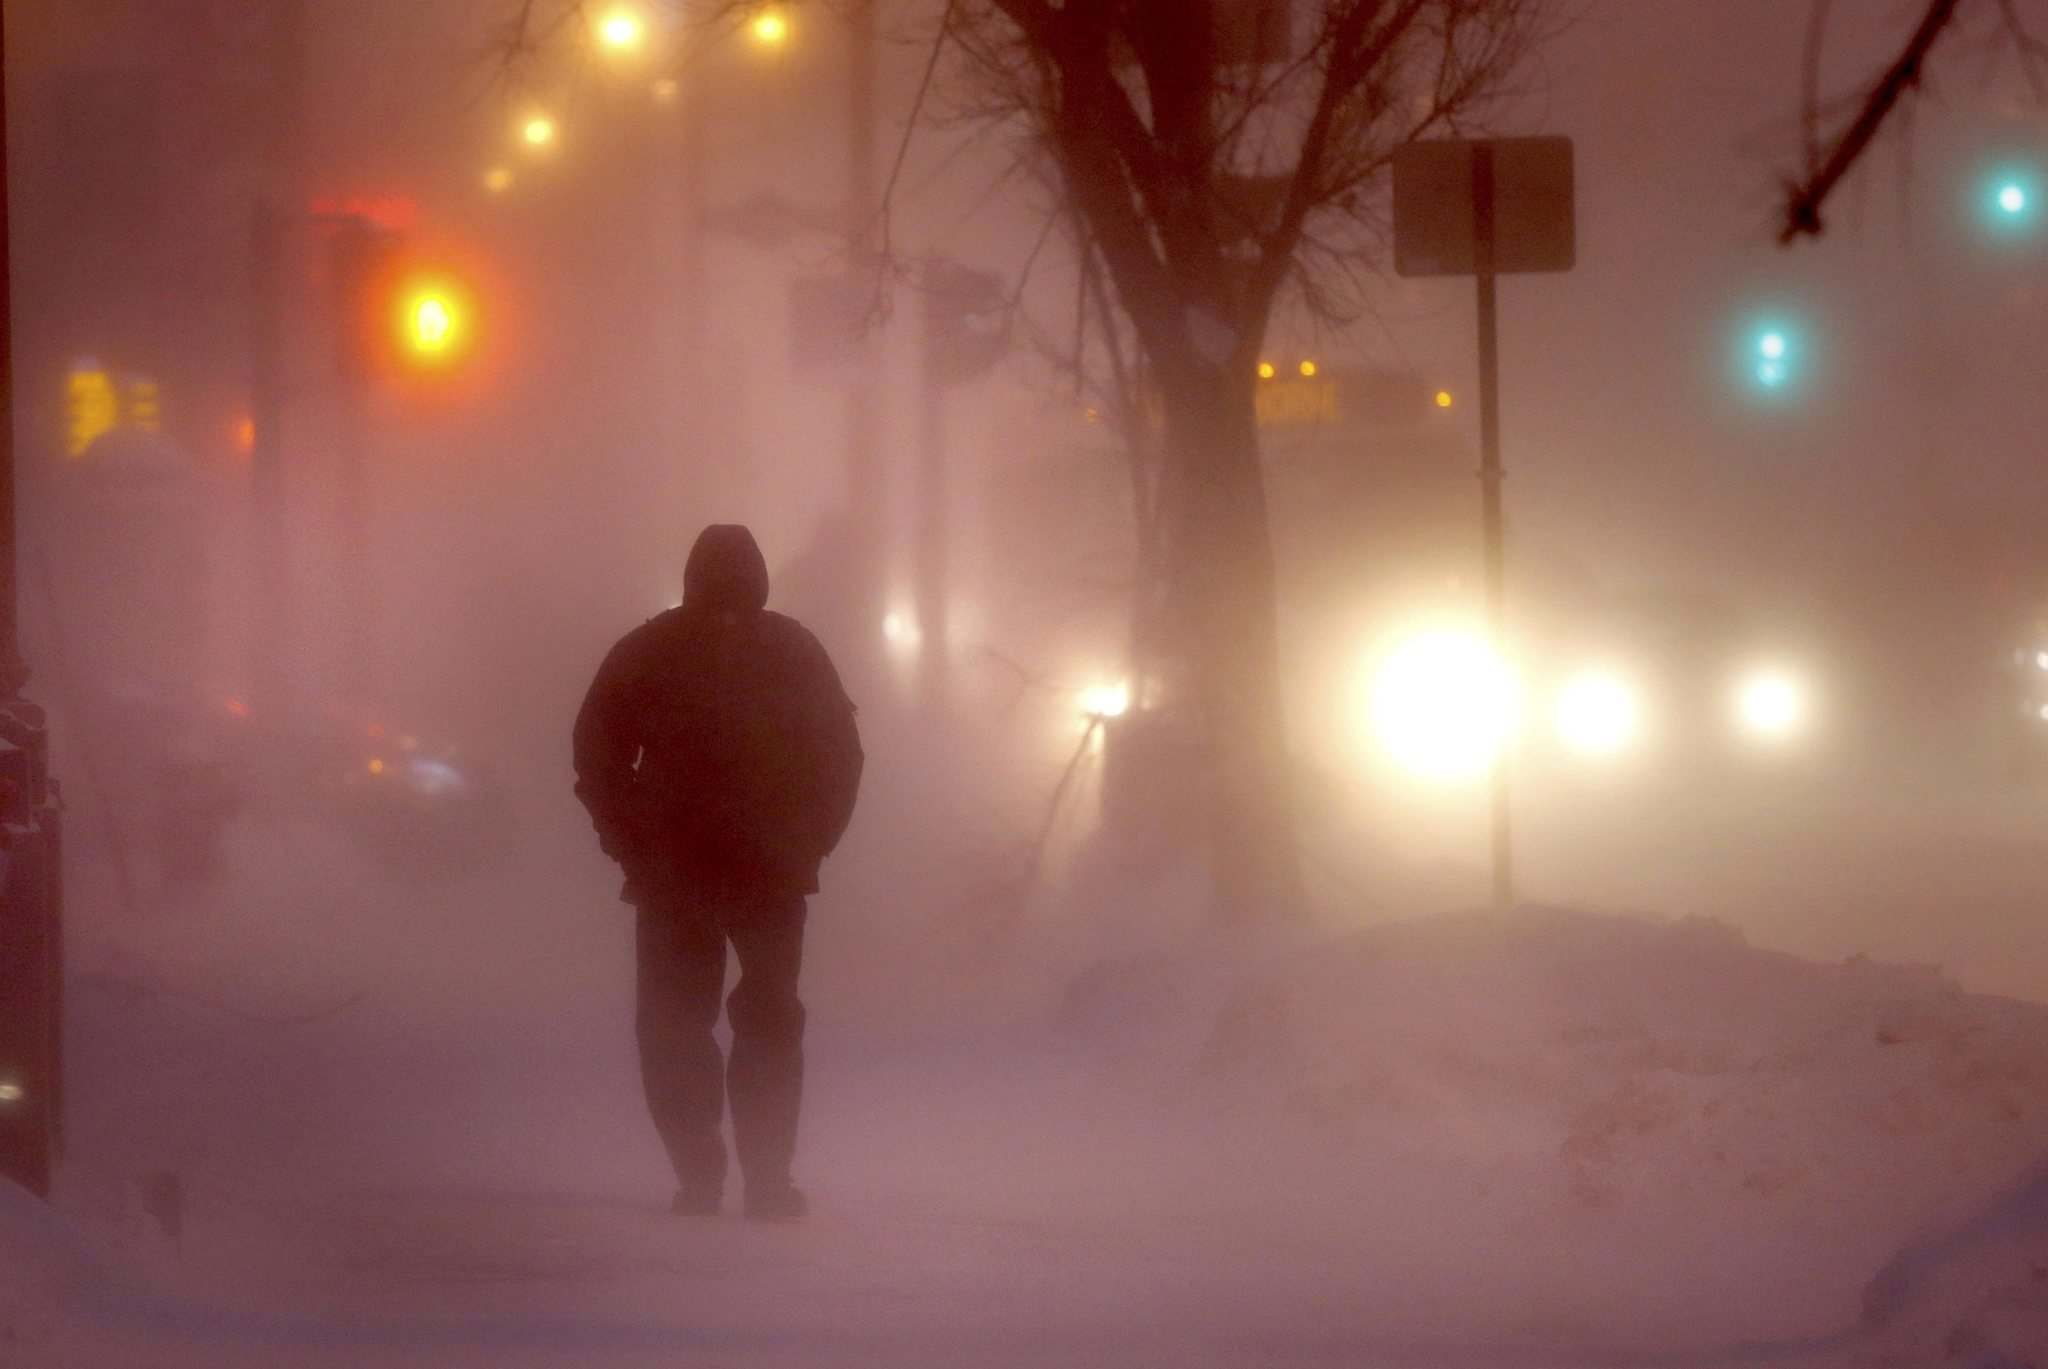 WAYNE GLOWACKI / WINNIPEG FREE PRESS files</p><p>It's common to underestimate the potential for cold-weather injuries such as frostbite, a potentially serious condition that occurs when skin freezes.</p>